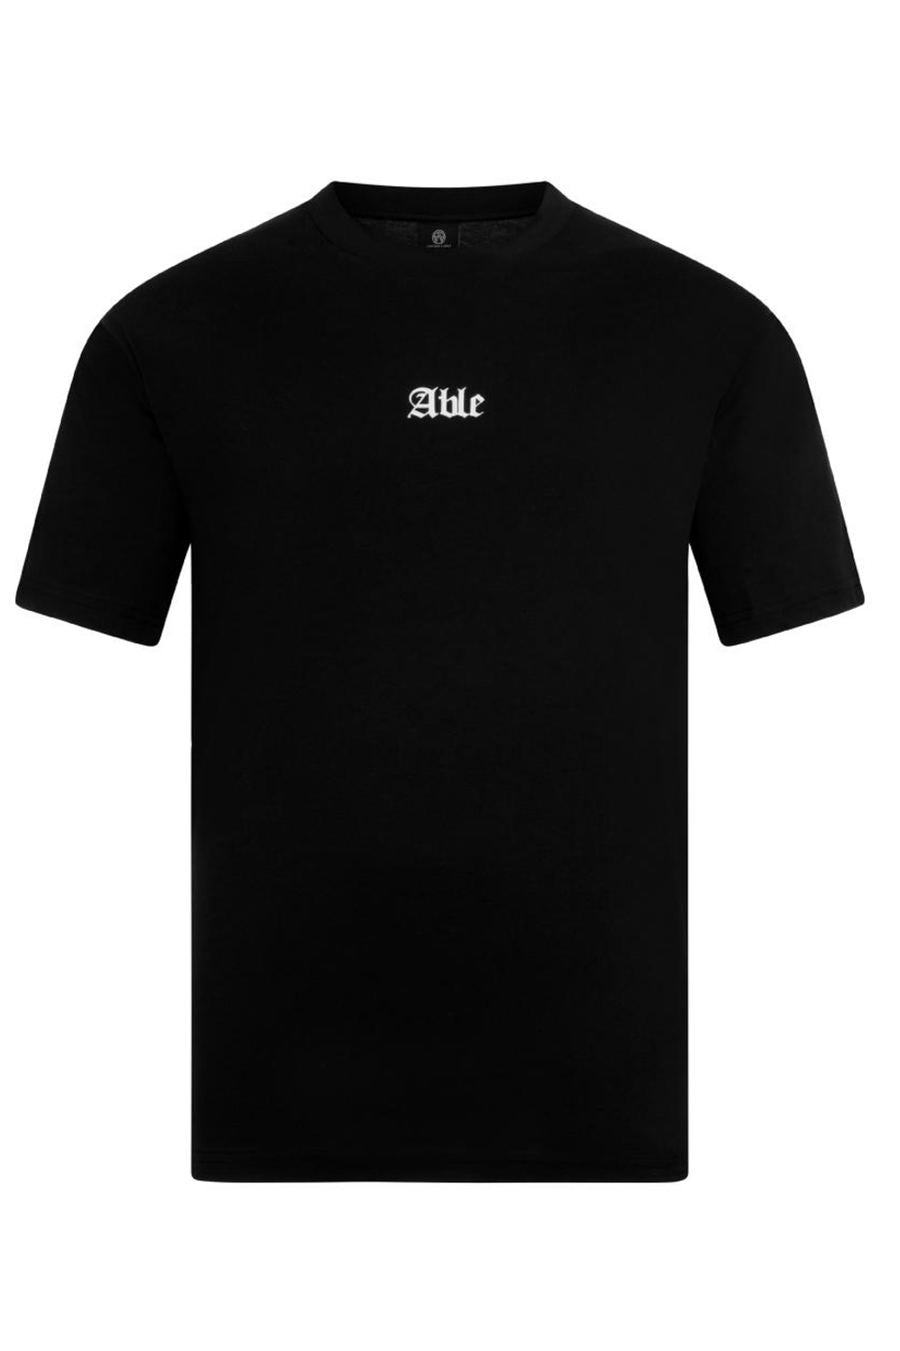 Chained & Able Brand T-Shirt - Black - 2